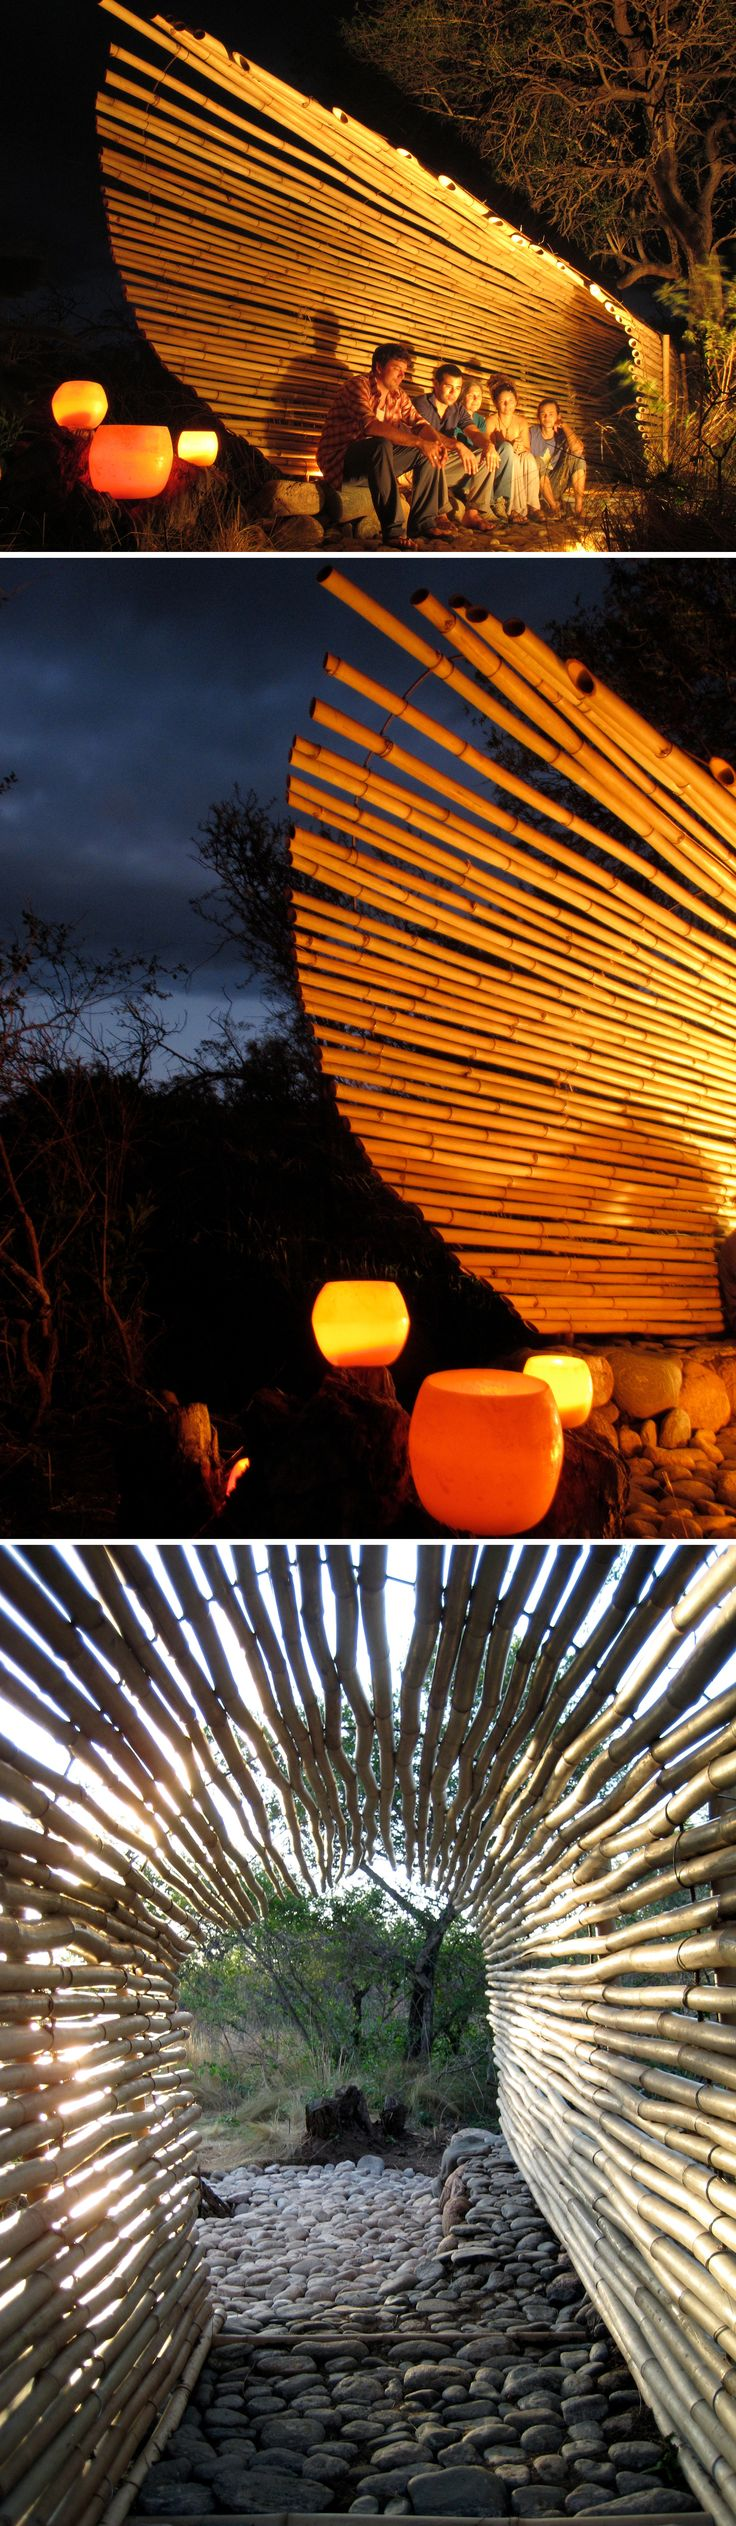 A modern gazebo made out of bamboo, perfect for your backyard hangouts by the fire pit! Check out the website for step-by-step instructions!